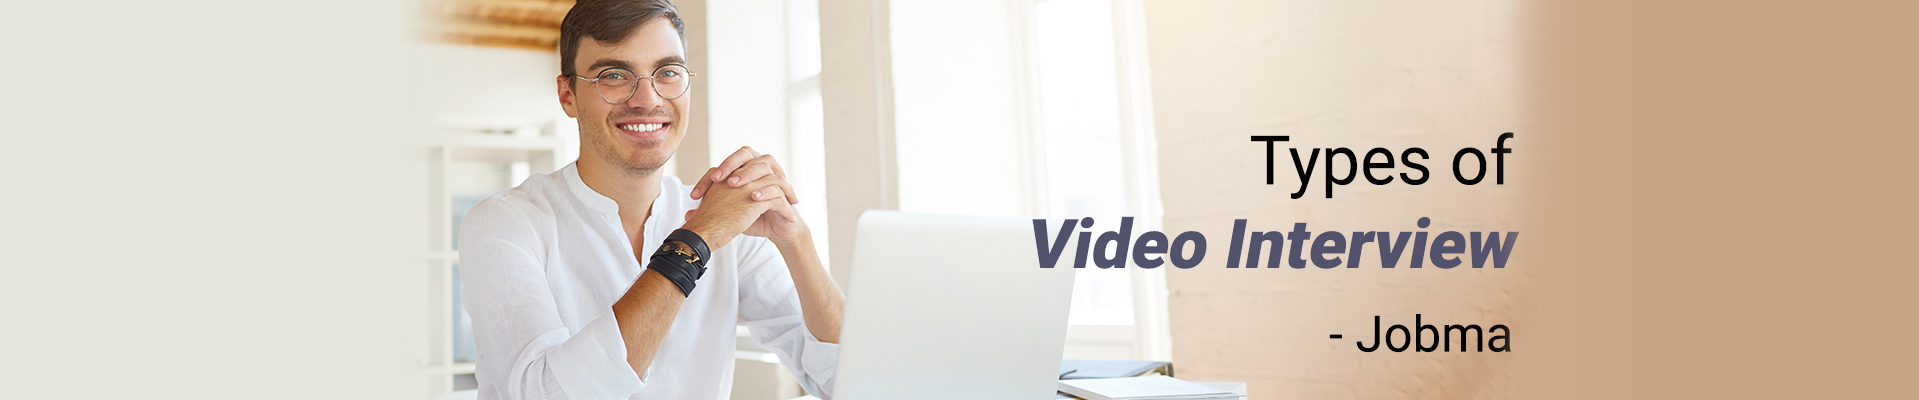 Types of Video Interview